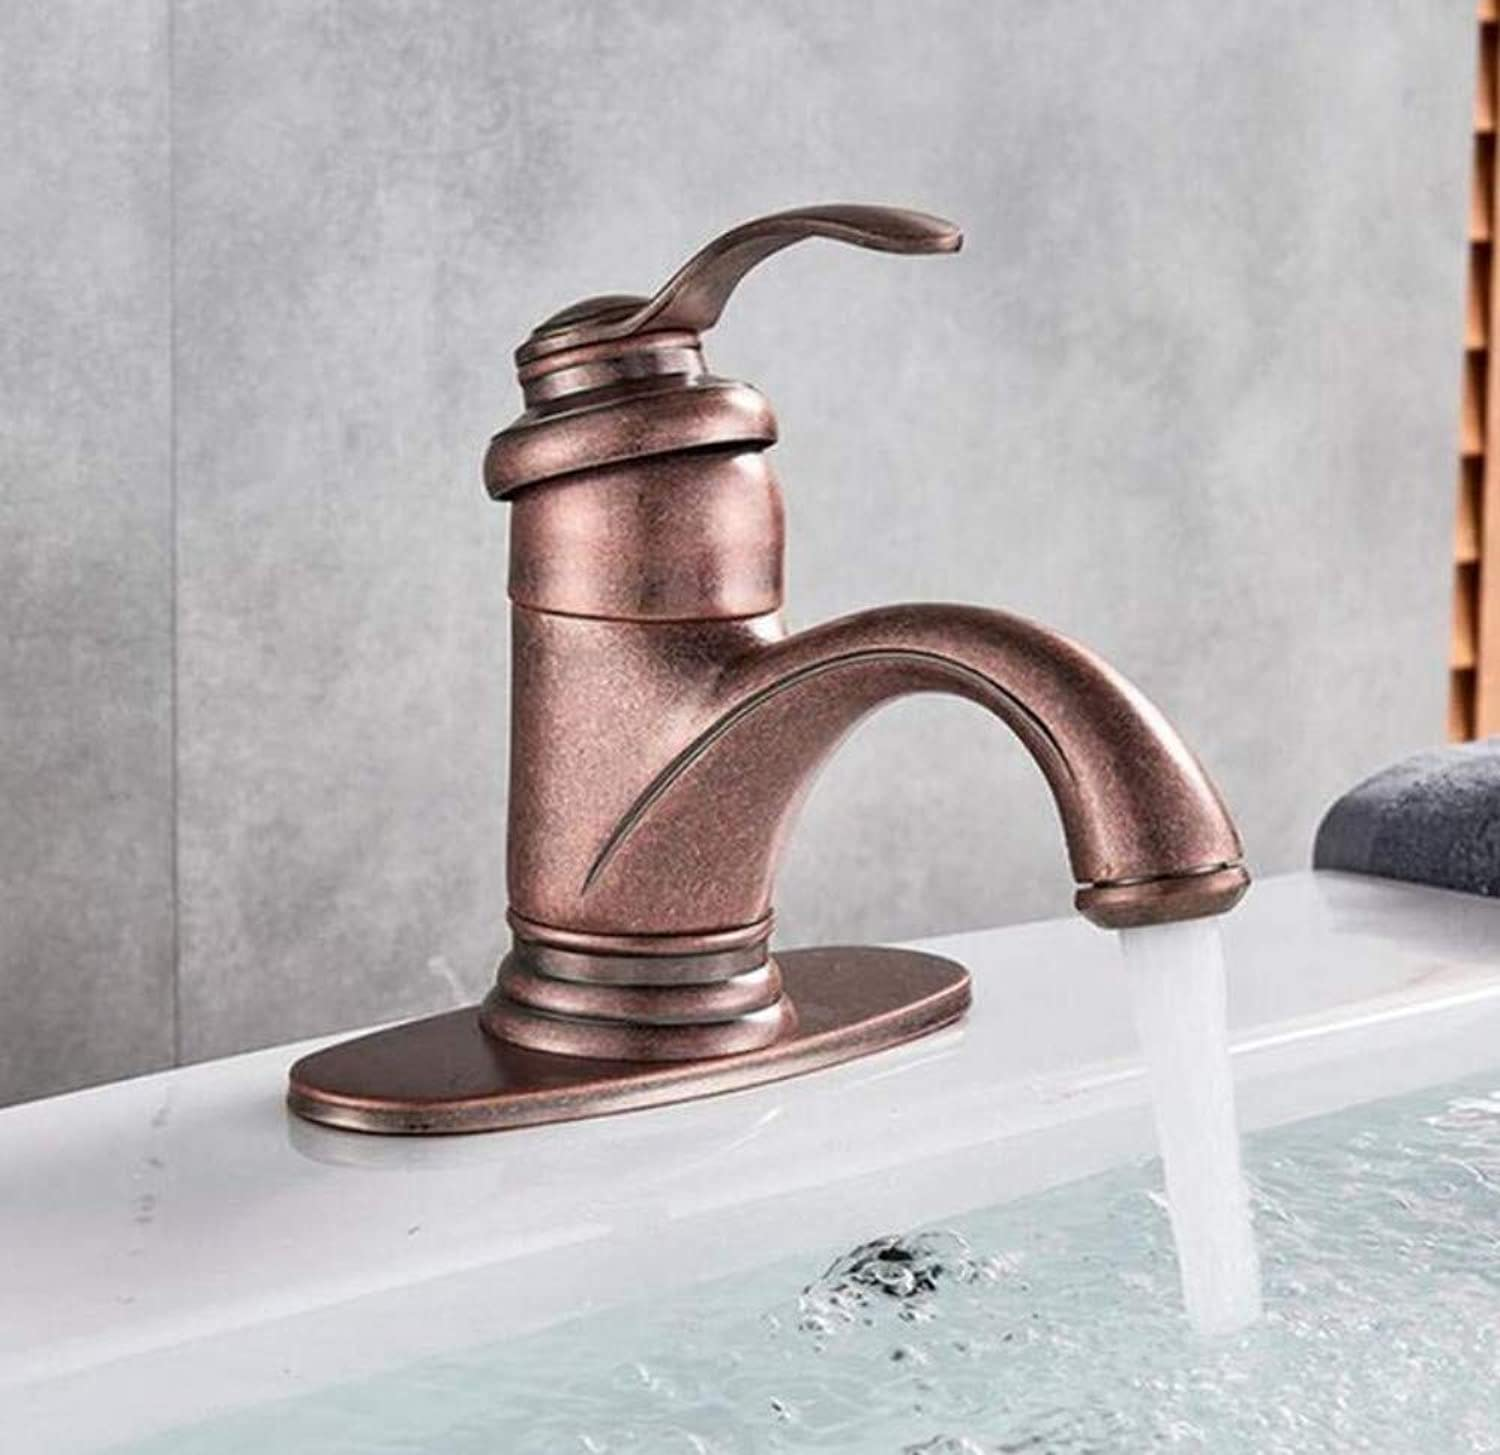 Brass Wall Faucet Chrome Brass Faucethandle Mixer Tap Solid Brass Hot and Cold Water